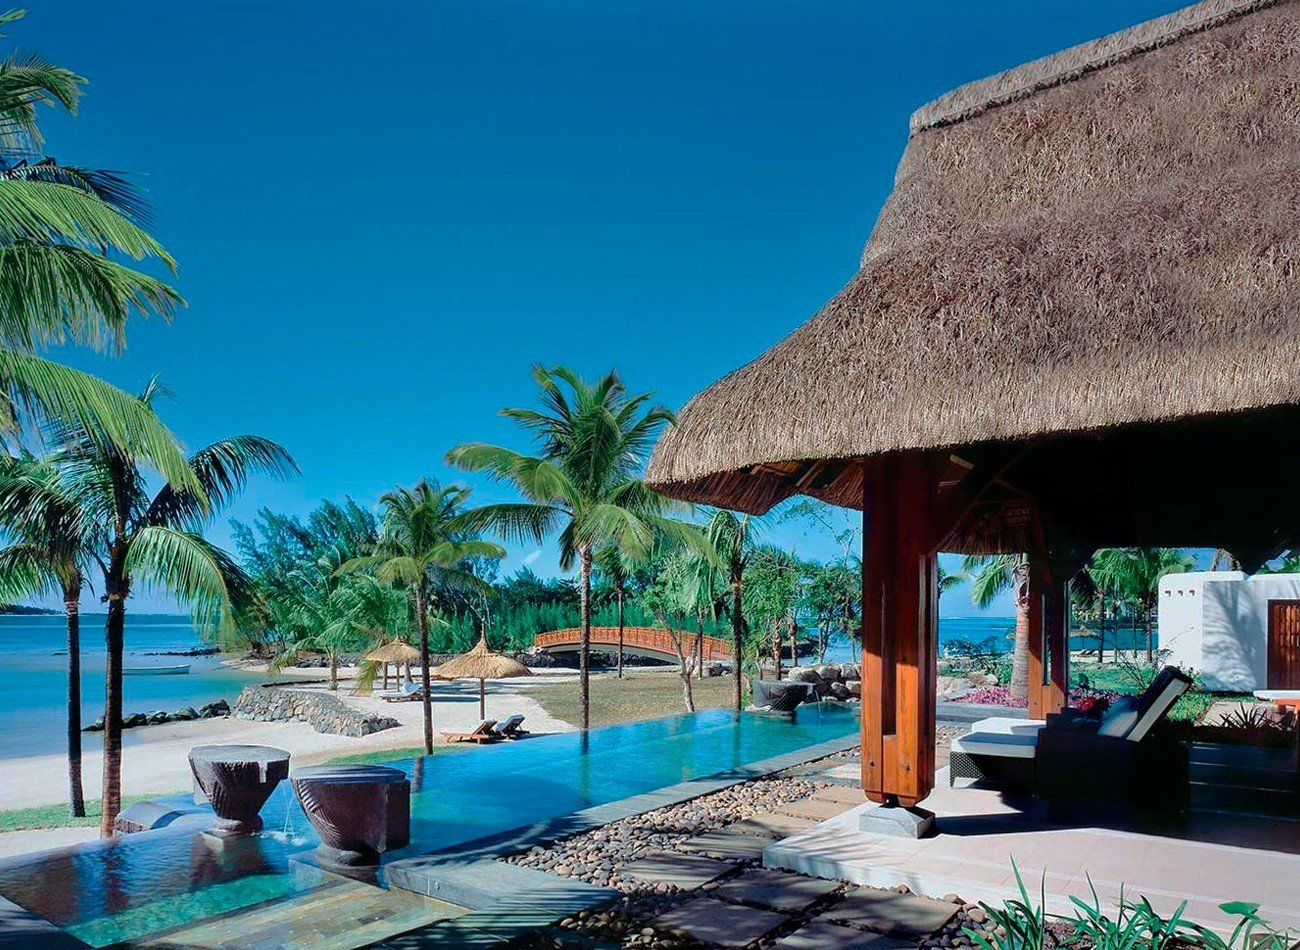 Hotels tree outdoor umbrella leisure building Resort property vacation caribbean swimming pool Beach tourism Pool estate Sea arecales Villa Lagoon palm furniture area shade several